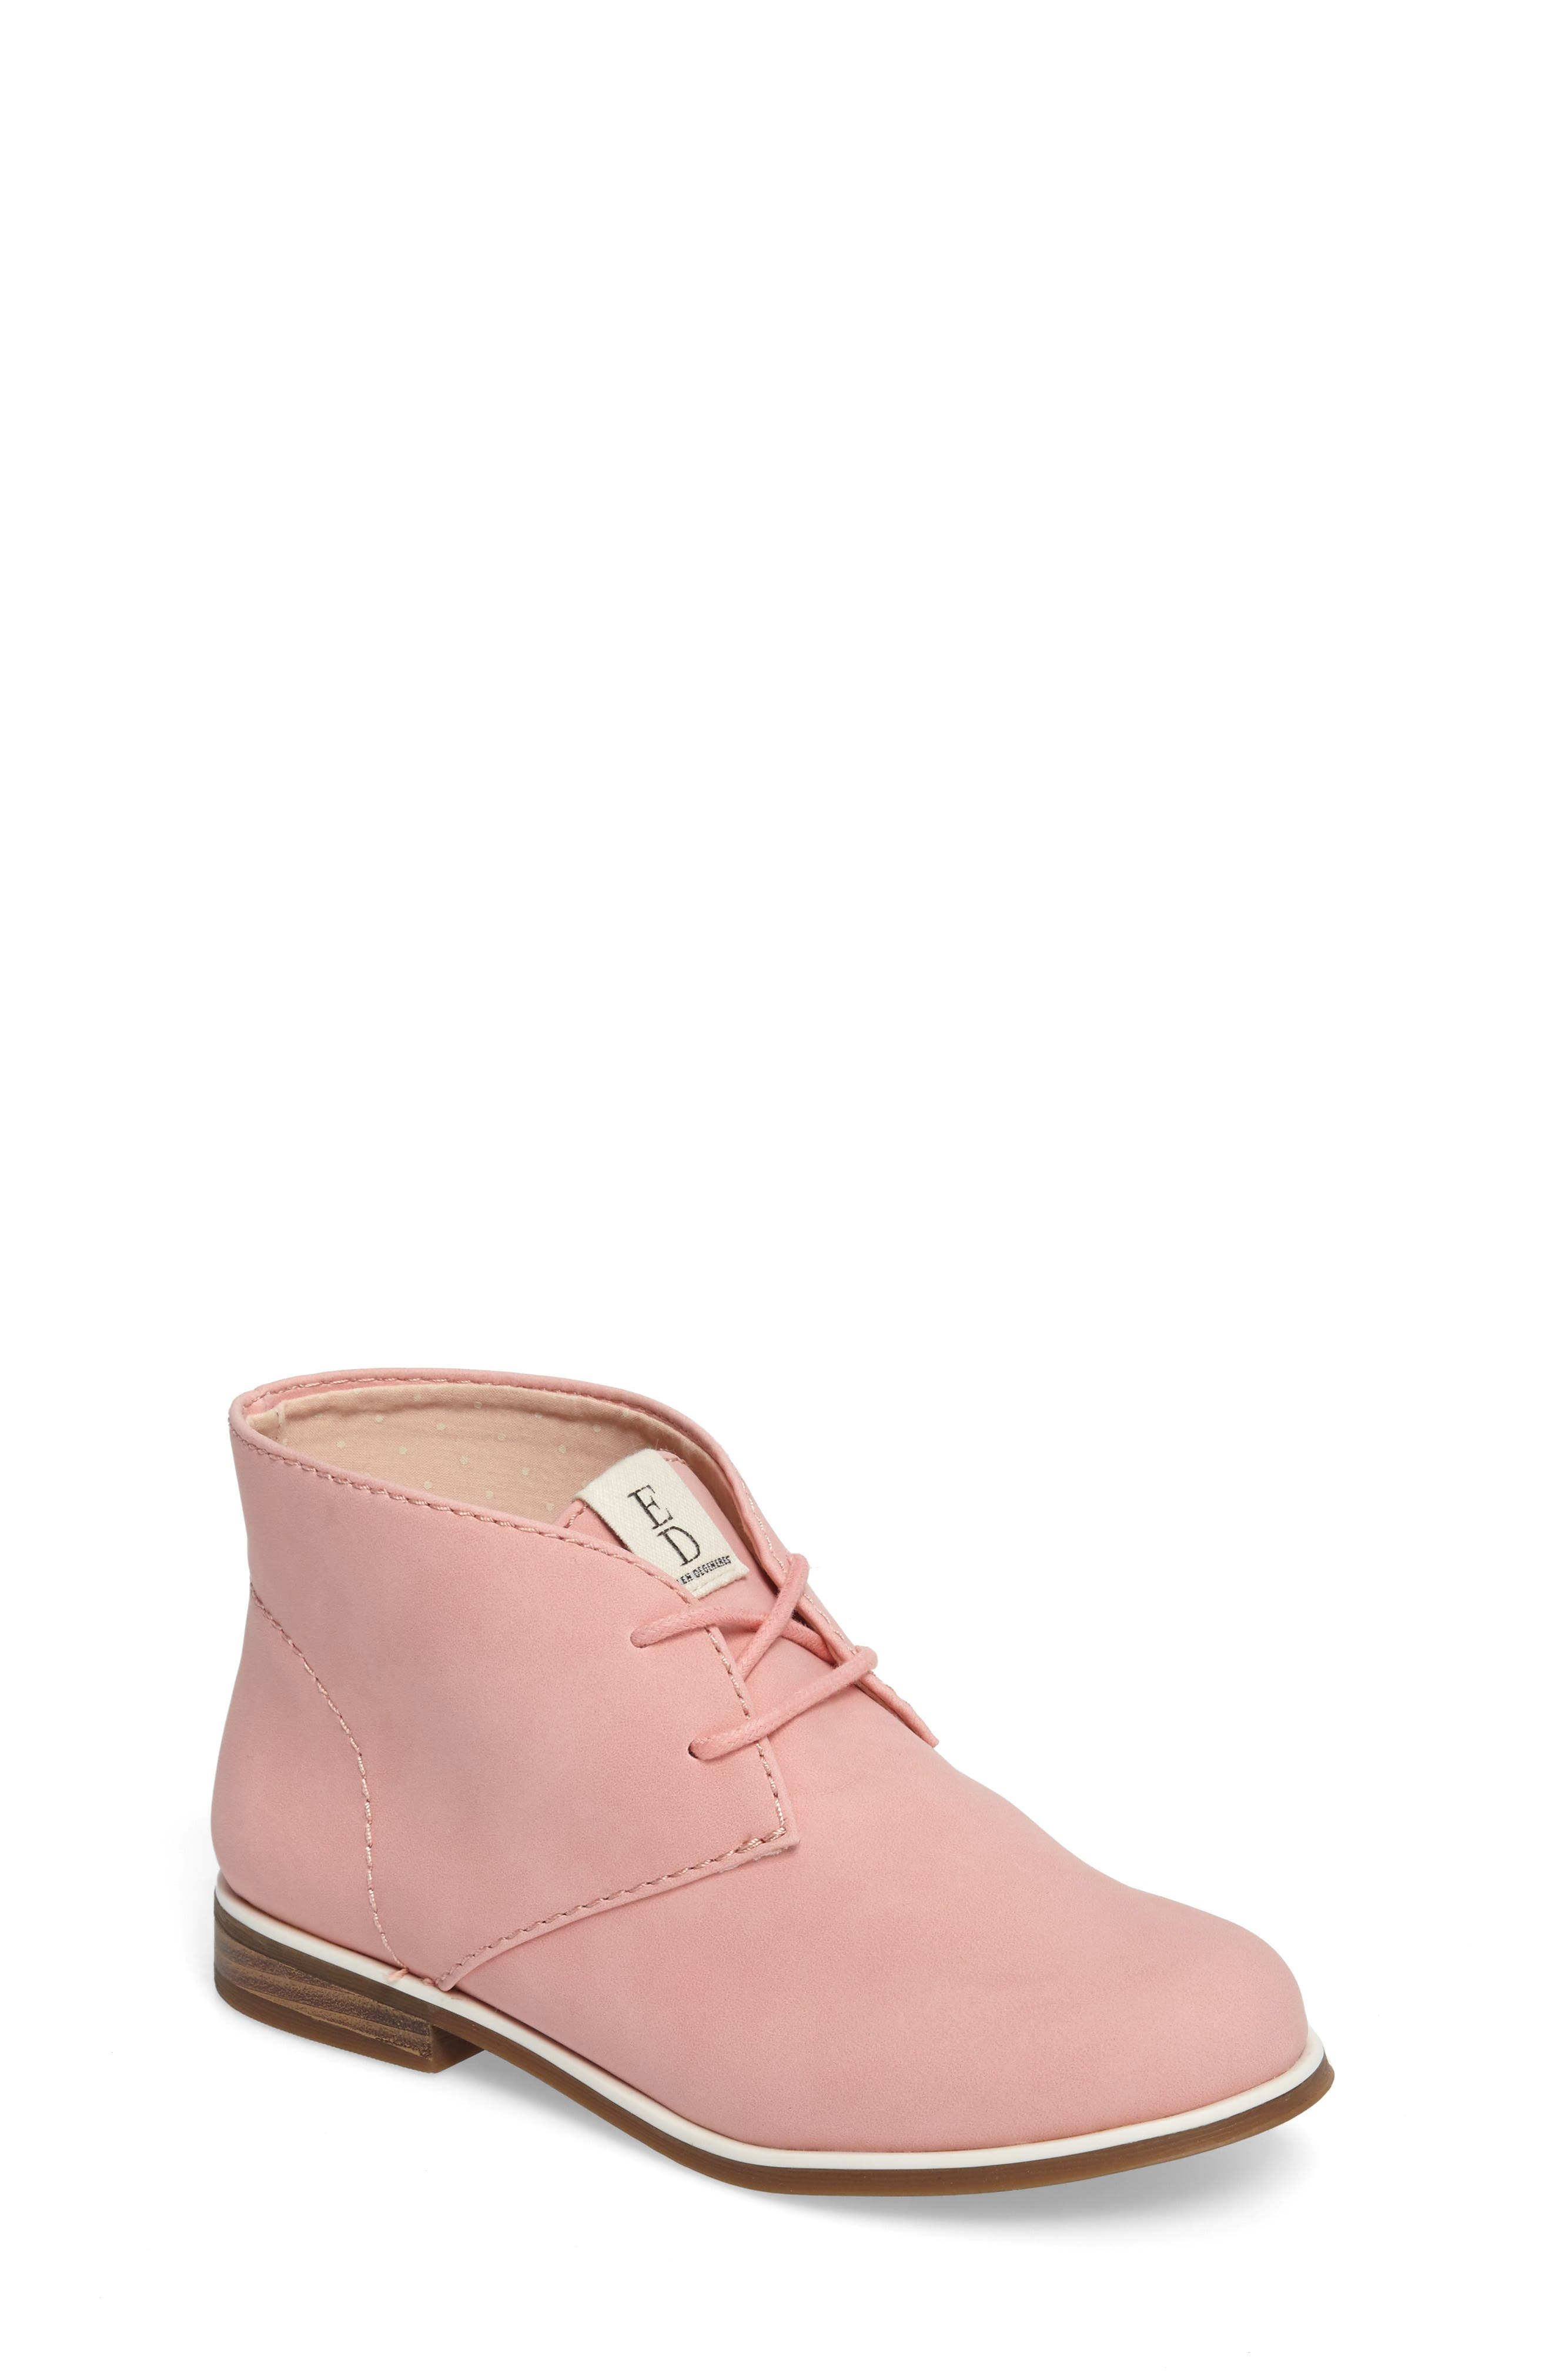 ED Ellen DeGeneres Korie Chukka Bootie (Toddler, Little Kid & Big Kid)